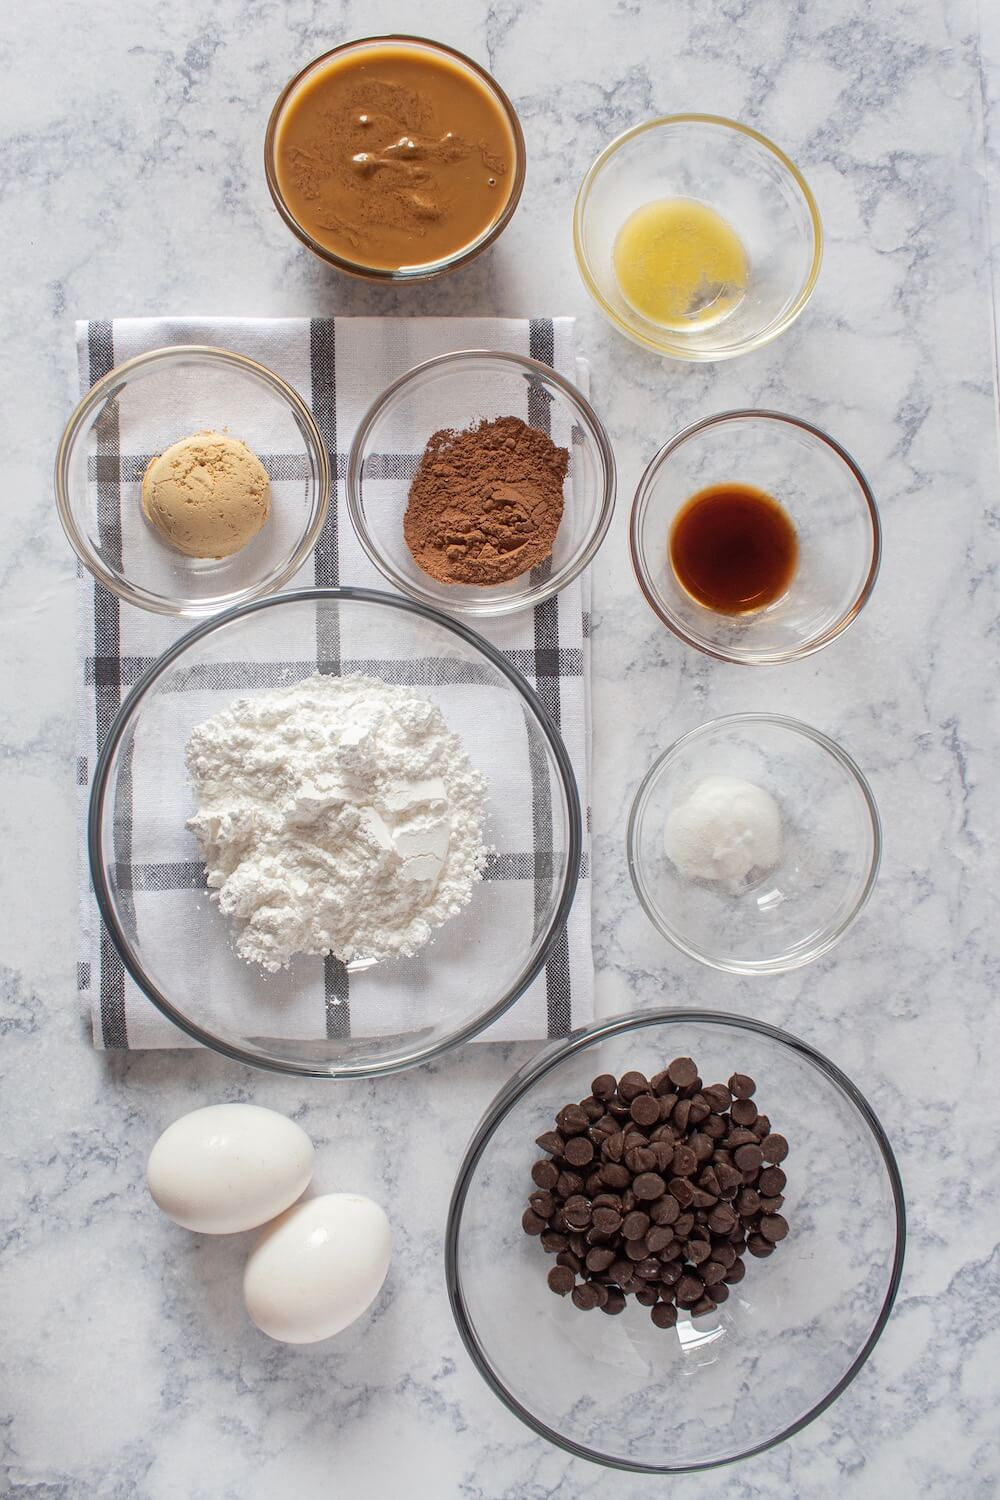 All ingredients for these keto double chocolate chip cookies laid out on the counter